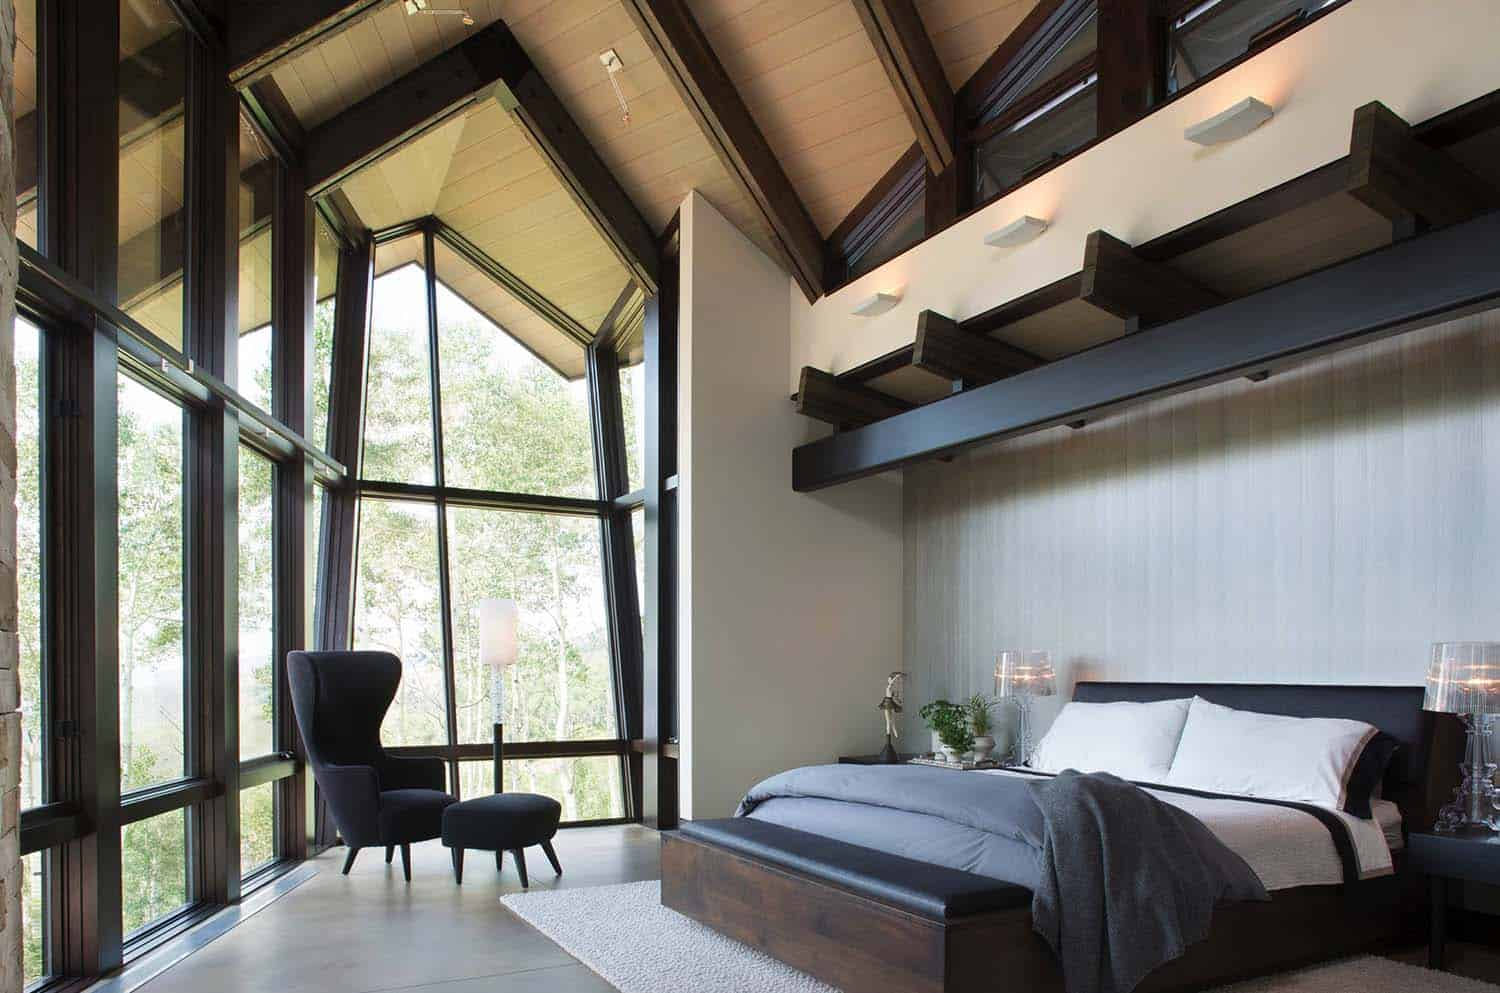 Mountain Contemporary Home-RKD Architects-09-1 Kindesign